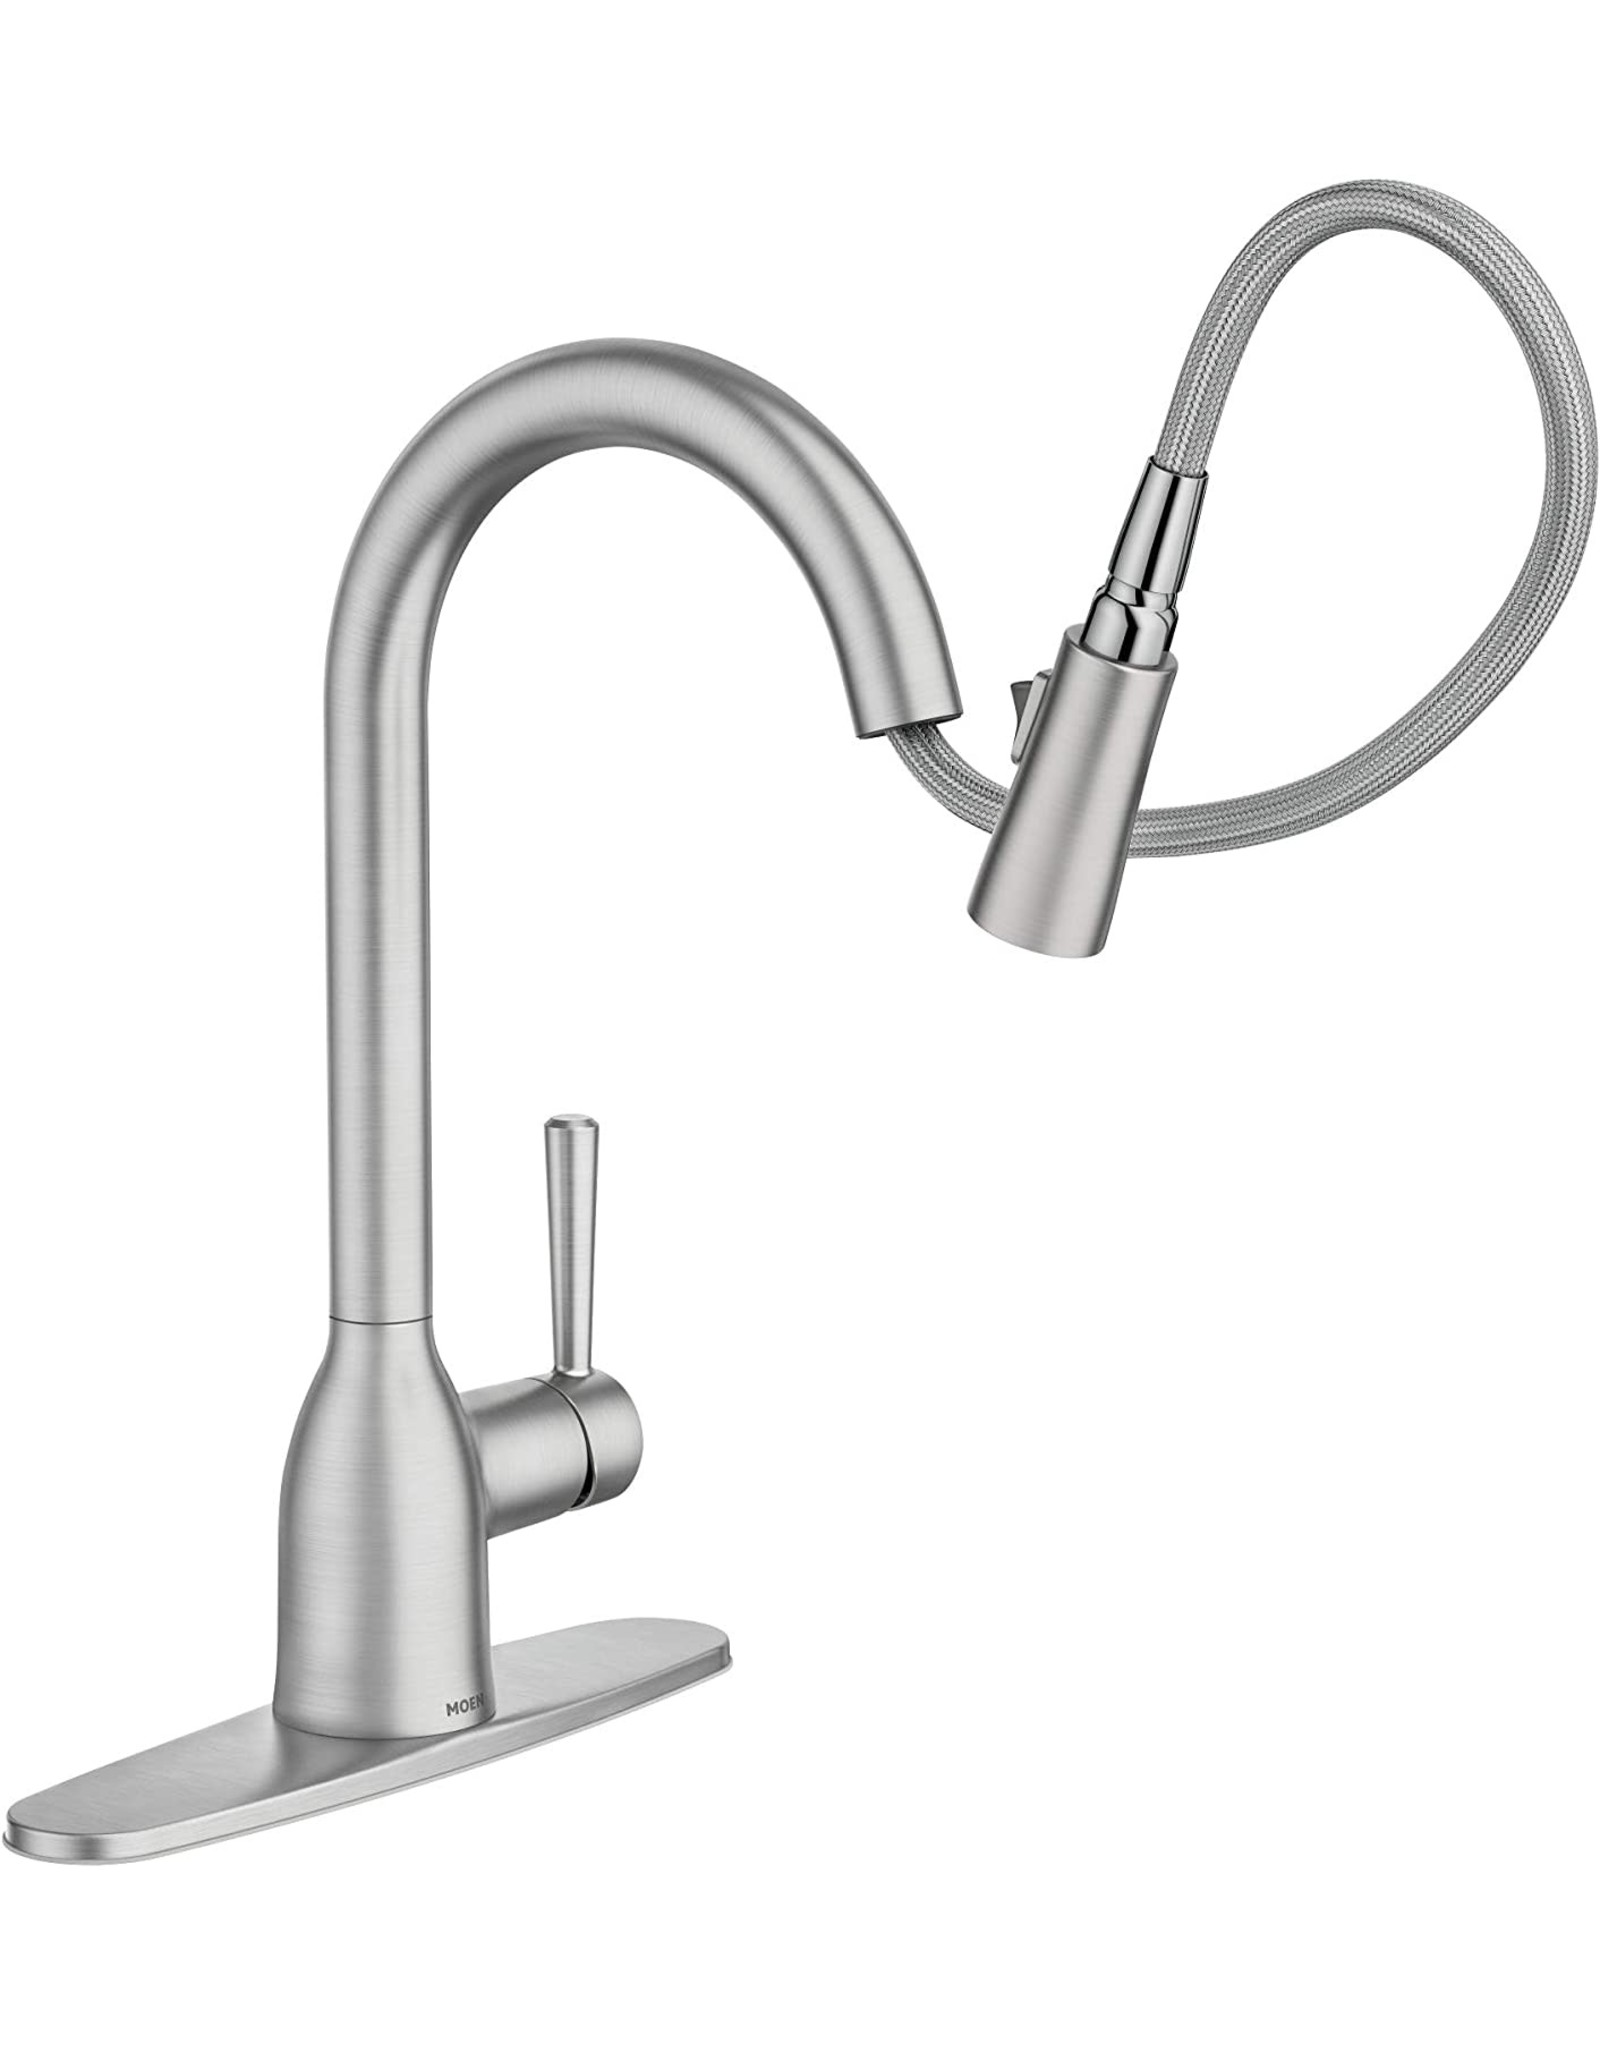 Moen Moen 87233SRS Adler One-Handle High Arc Pulldown Kitchen Faucet with Power Clean, Spot Resist Stainless